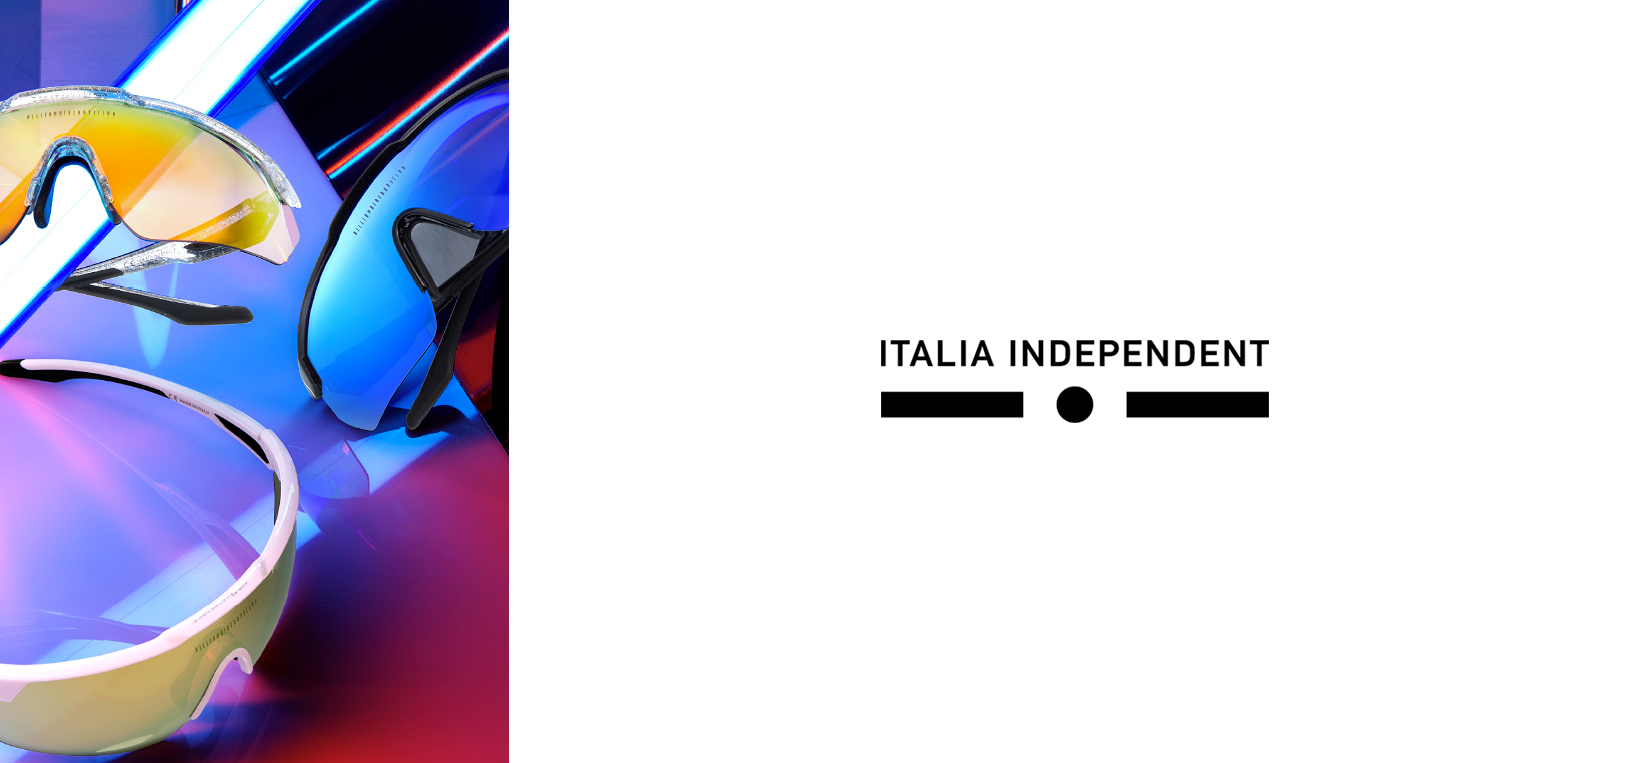 ITALIA INDEPENDENT BY PHARRELL - Men - Leam Roma